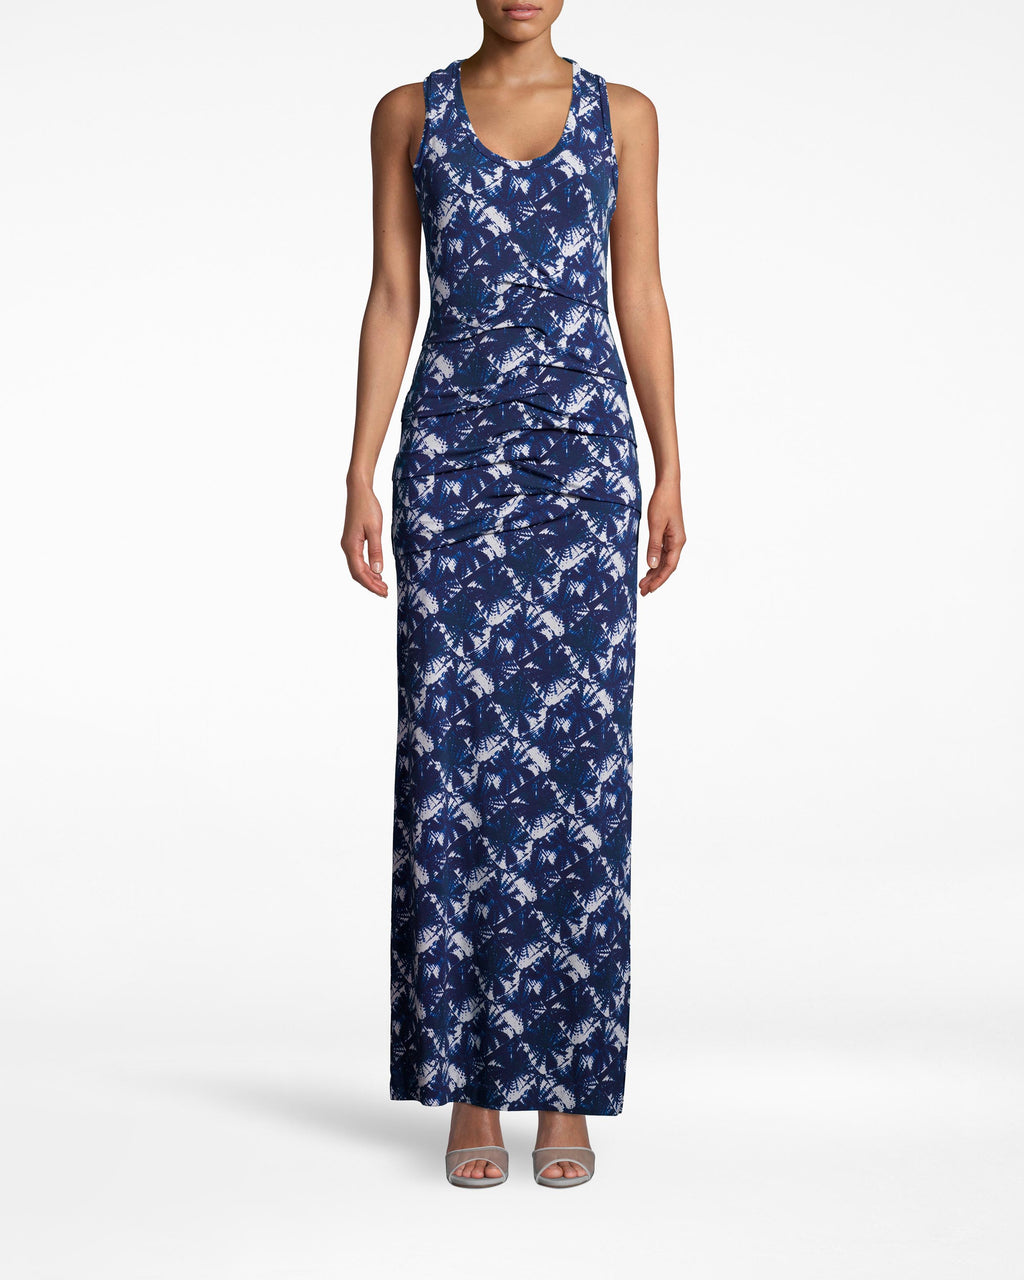 BL10165 - SHIBORI PINWHEEL VANESSA TIDAL PLEAT MAXI - dresses - long - FEATURING A SCOOP NECK AND A FLATTERING PLEATED FRONT, THE VANESSA DRESS IS THE PERFECT SPRING MAXI. DESIGNED IN OUR NEW SHIBORI PINWHEEL PRINT IN MATTE JERSEY. PAIR WITH STRAPPY SANDALS OR HEELS.